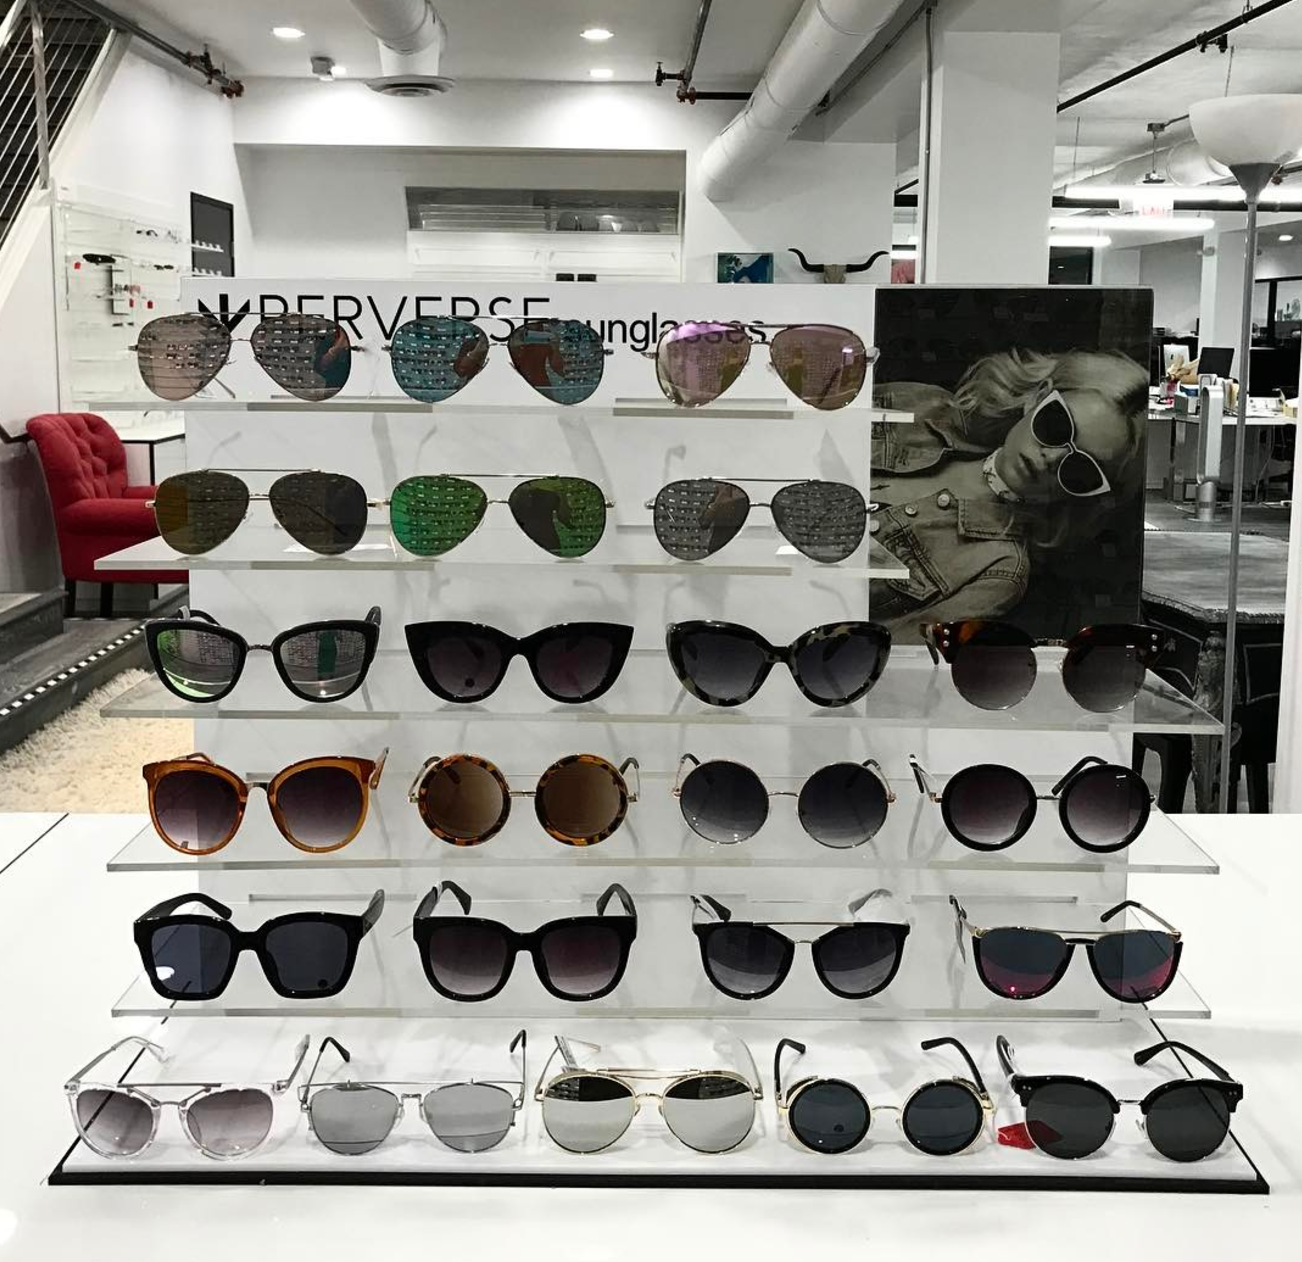 Toni Ko interview, Entity reports on her sunglasses collection